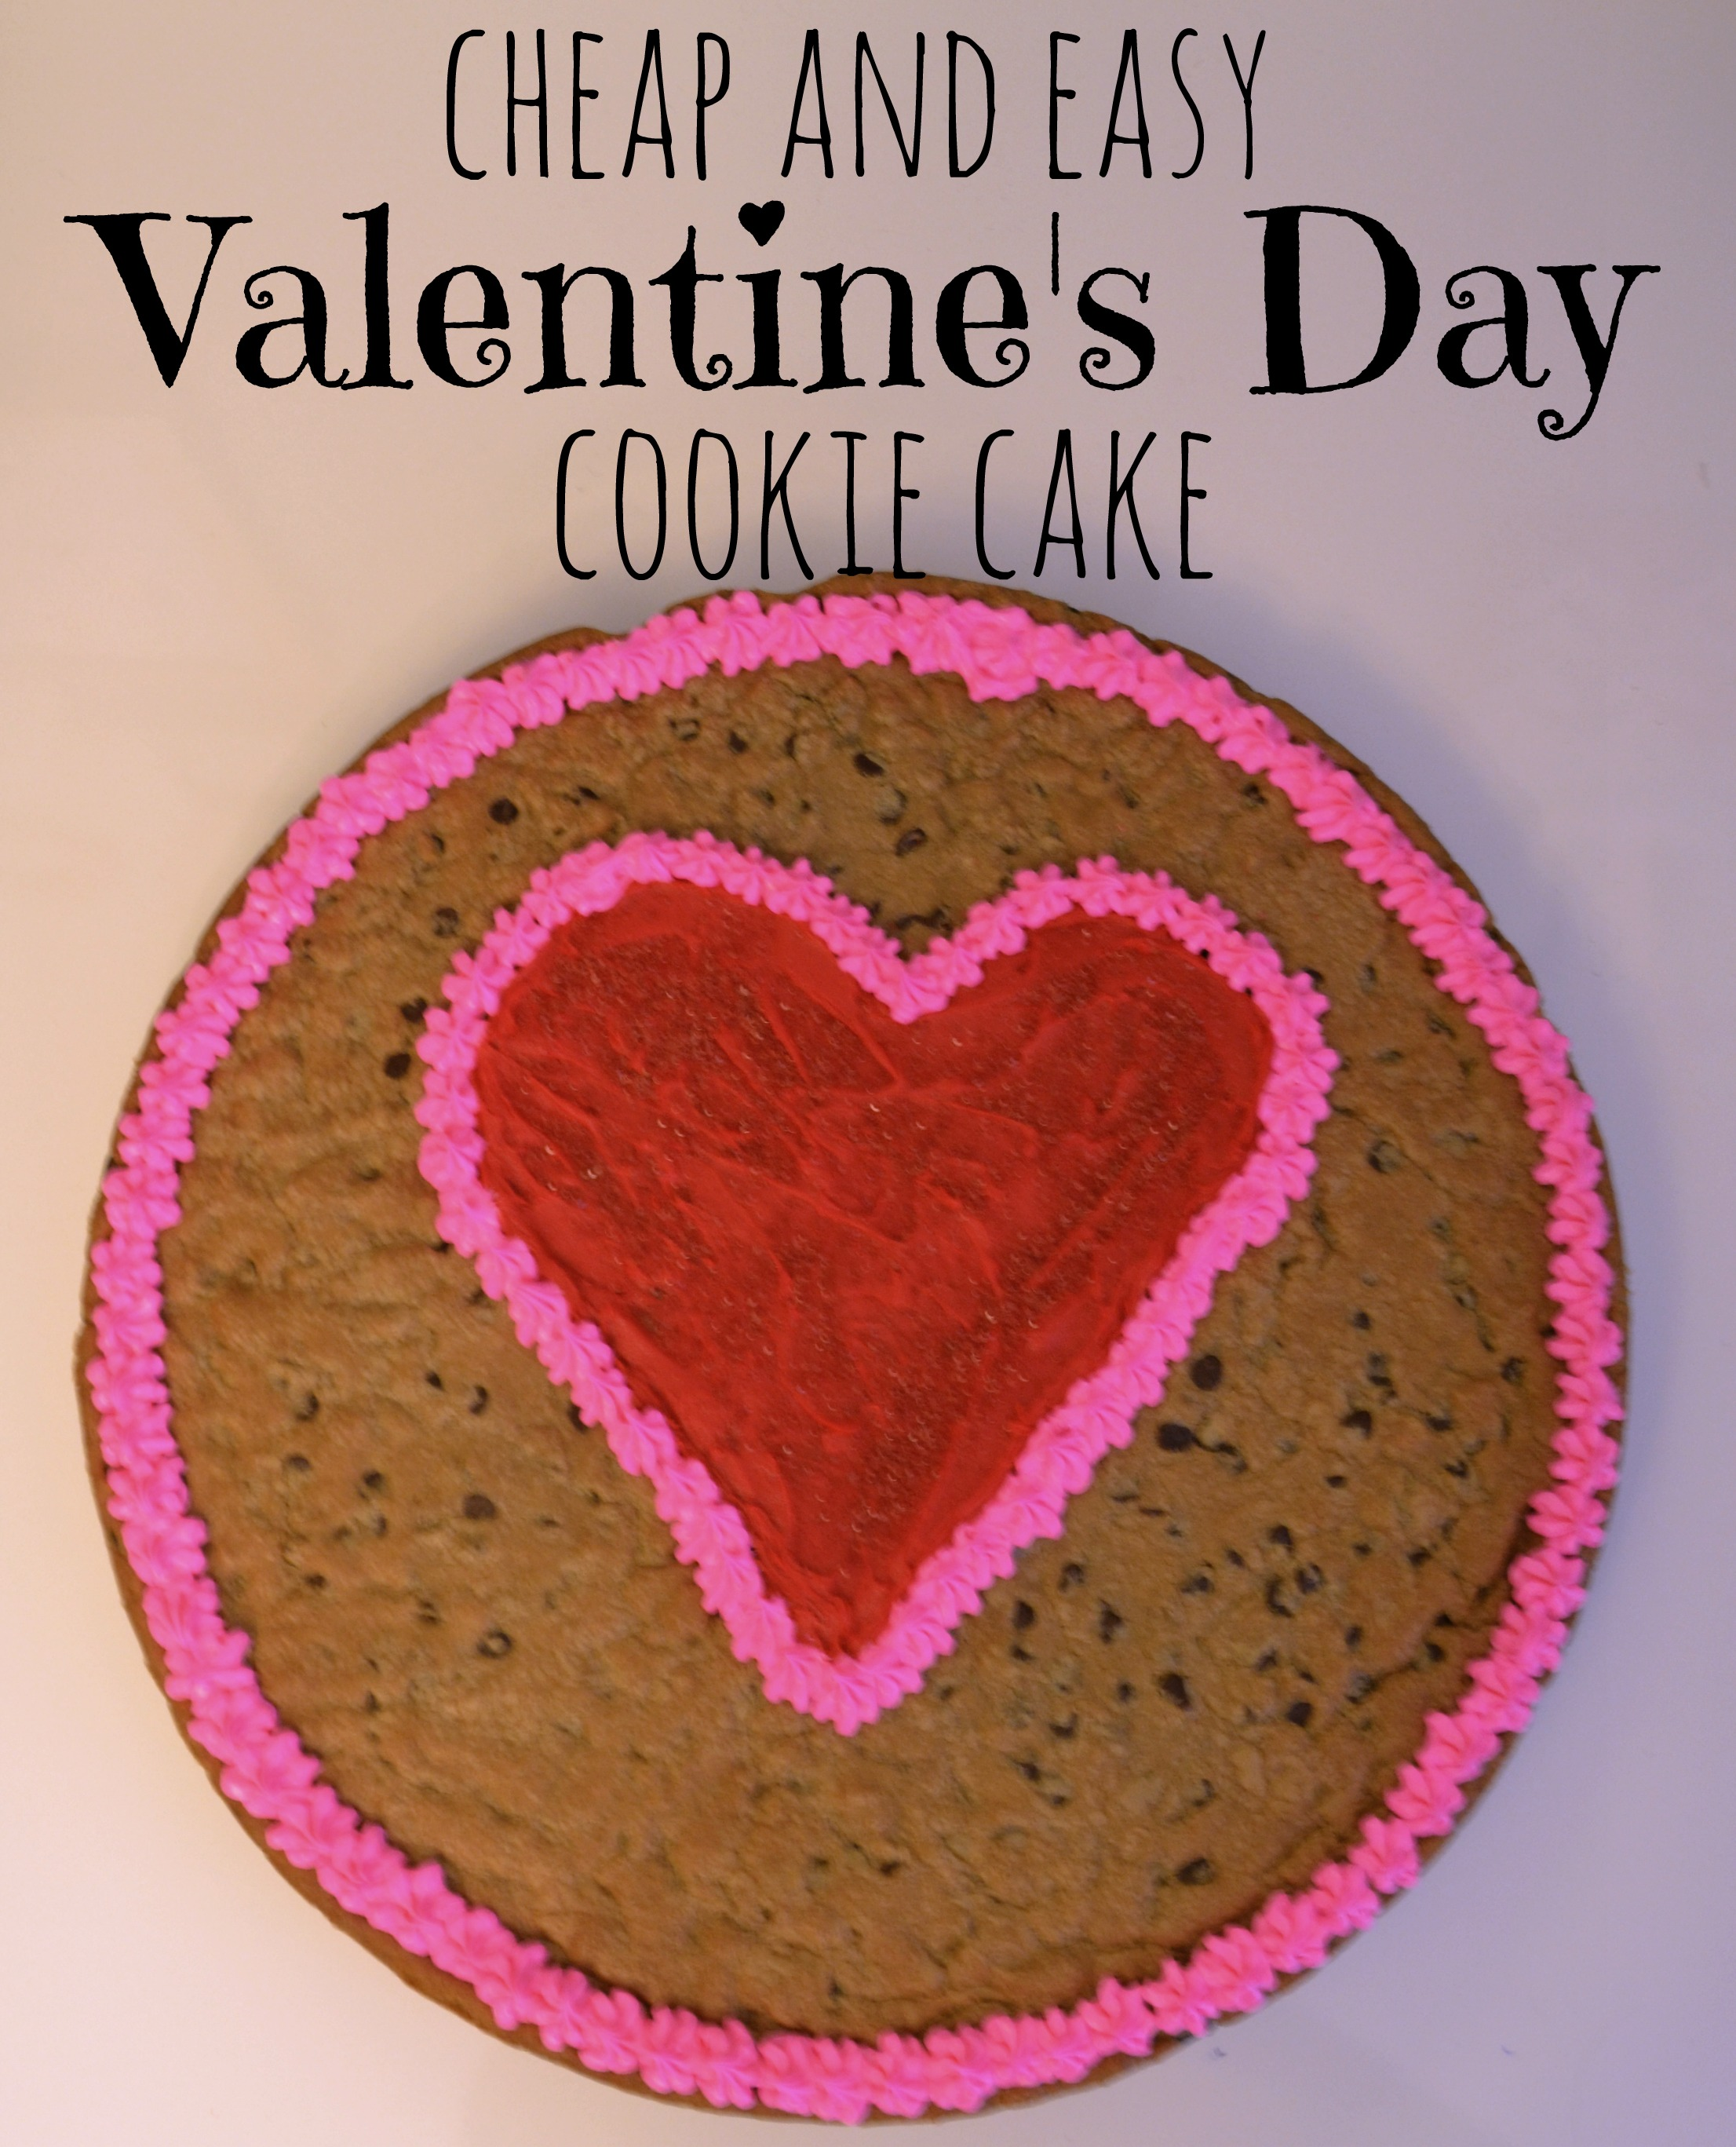 Cheap and Easy Valentine's Day Cookie Cake